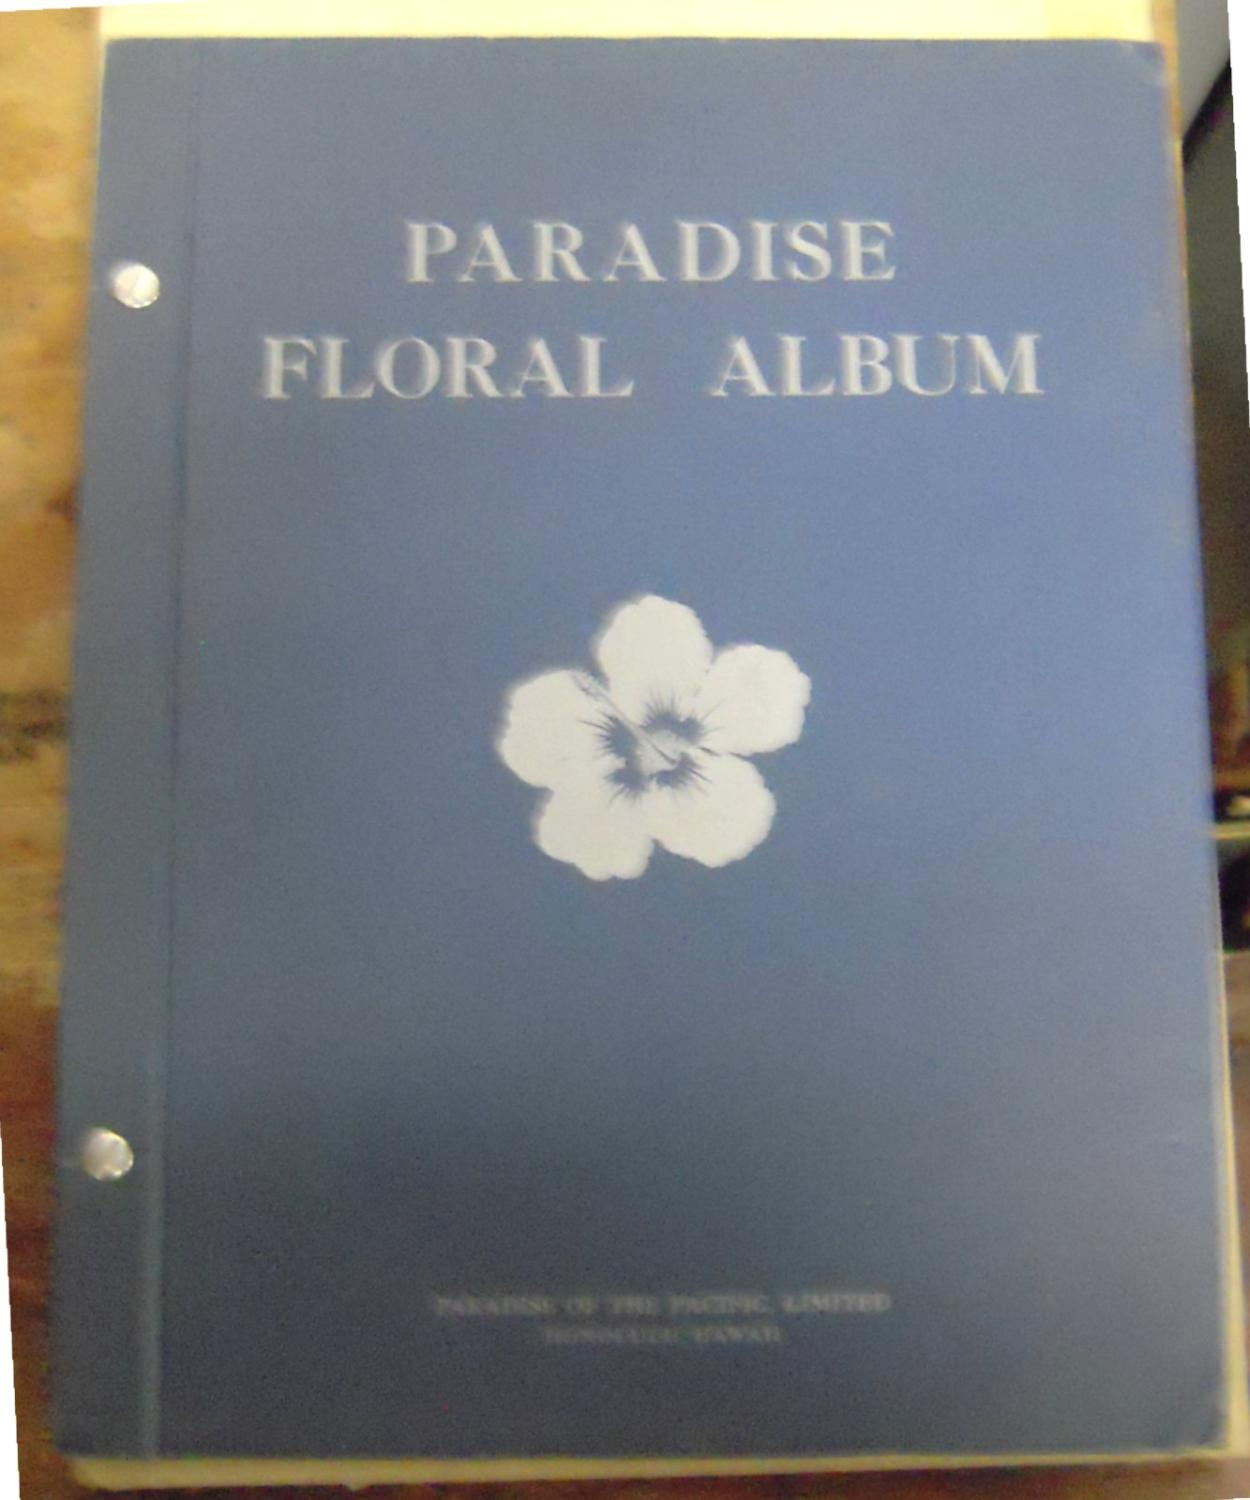 Paradise Floral Album Paradise of the Pacific, Ltd. Very Good Hardcover